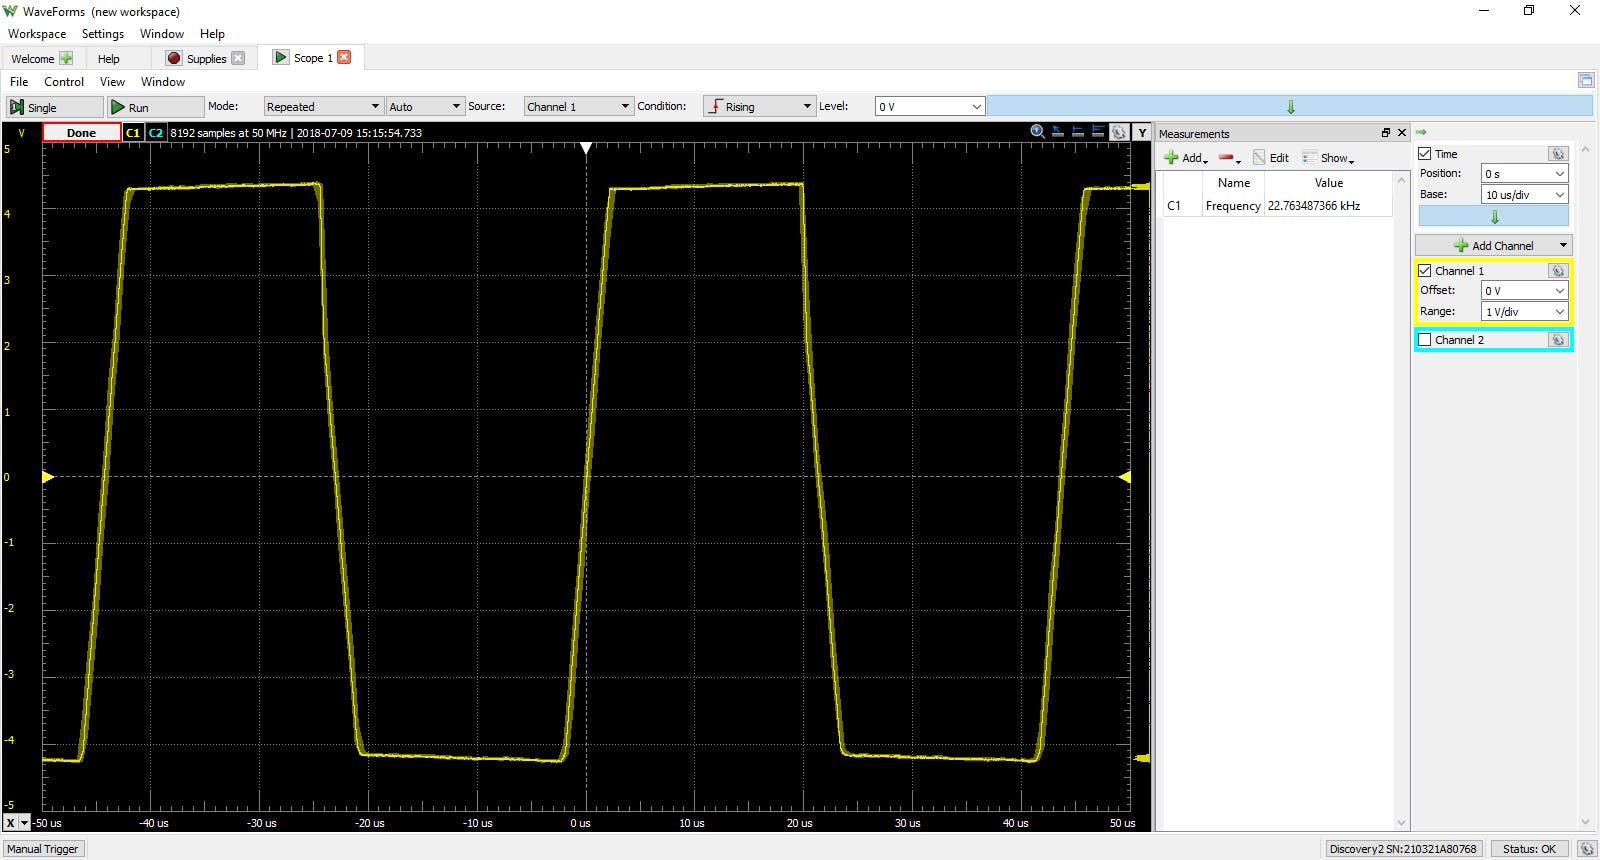 The astable mulitvibrator output is similar to a square wave.